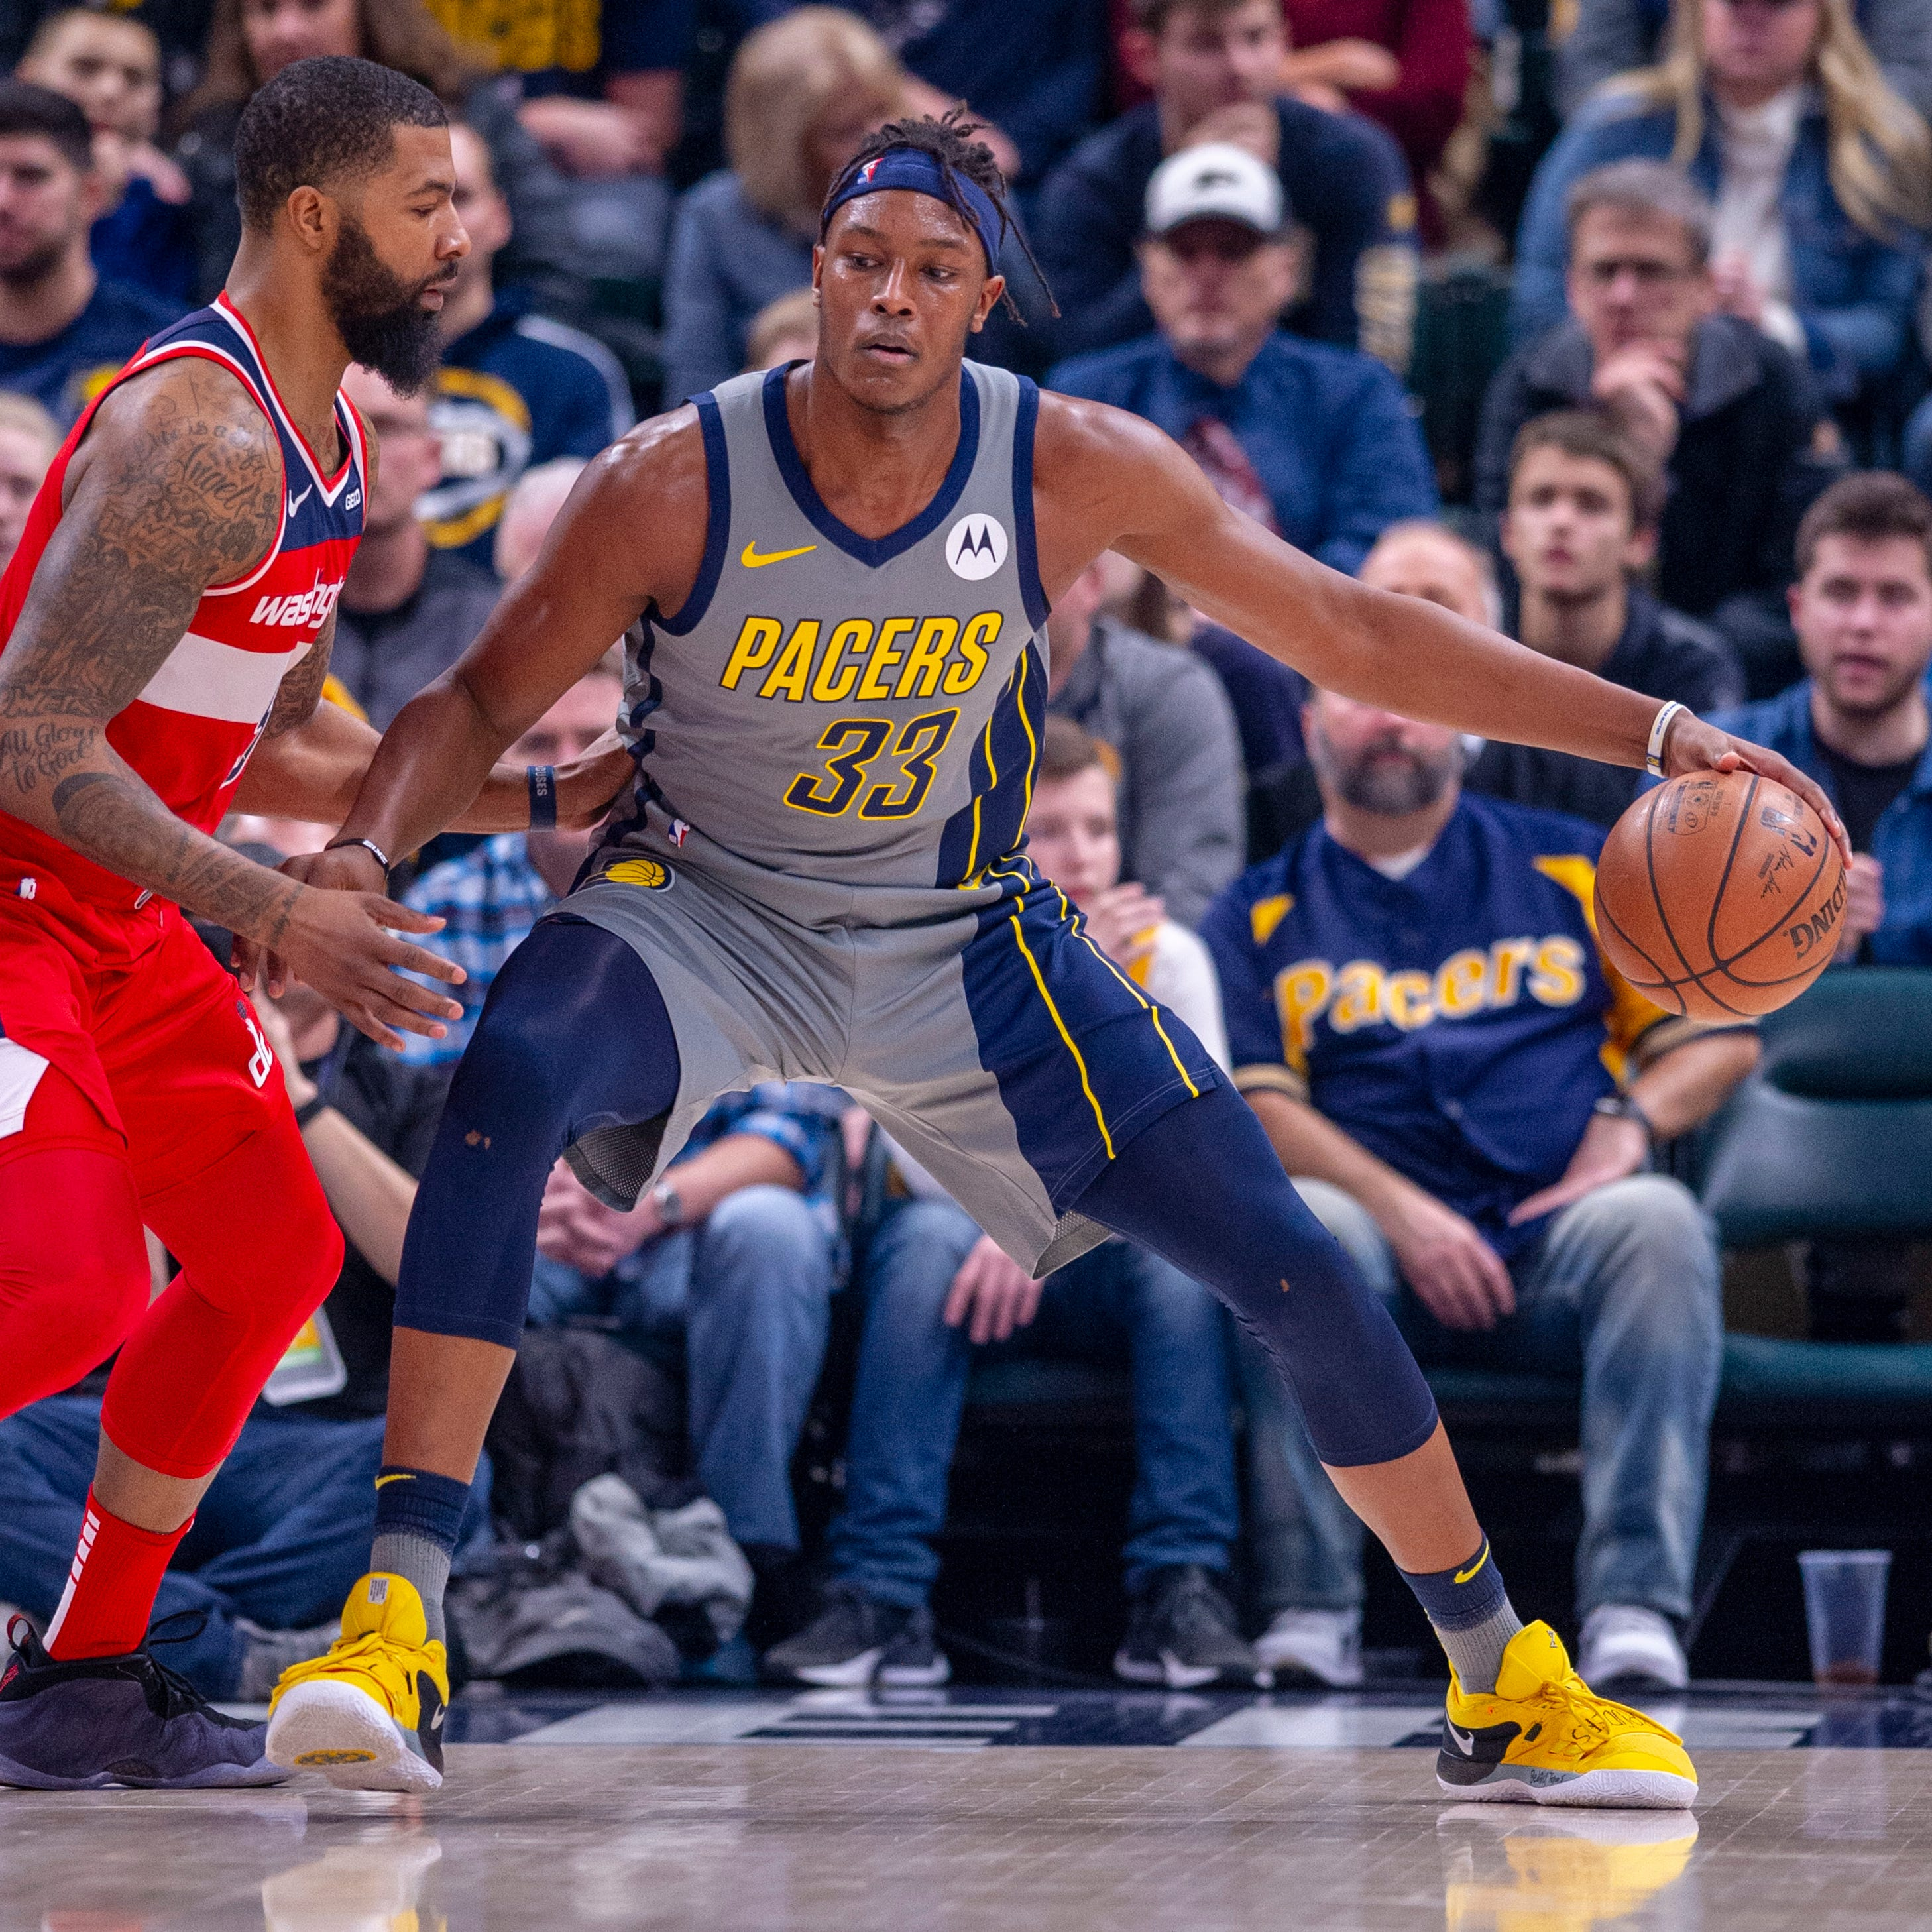 Pacers center Myles Turner (shoulder) will be a game-time decision vs. Suns